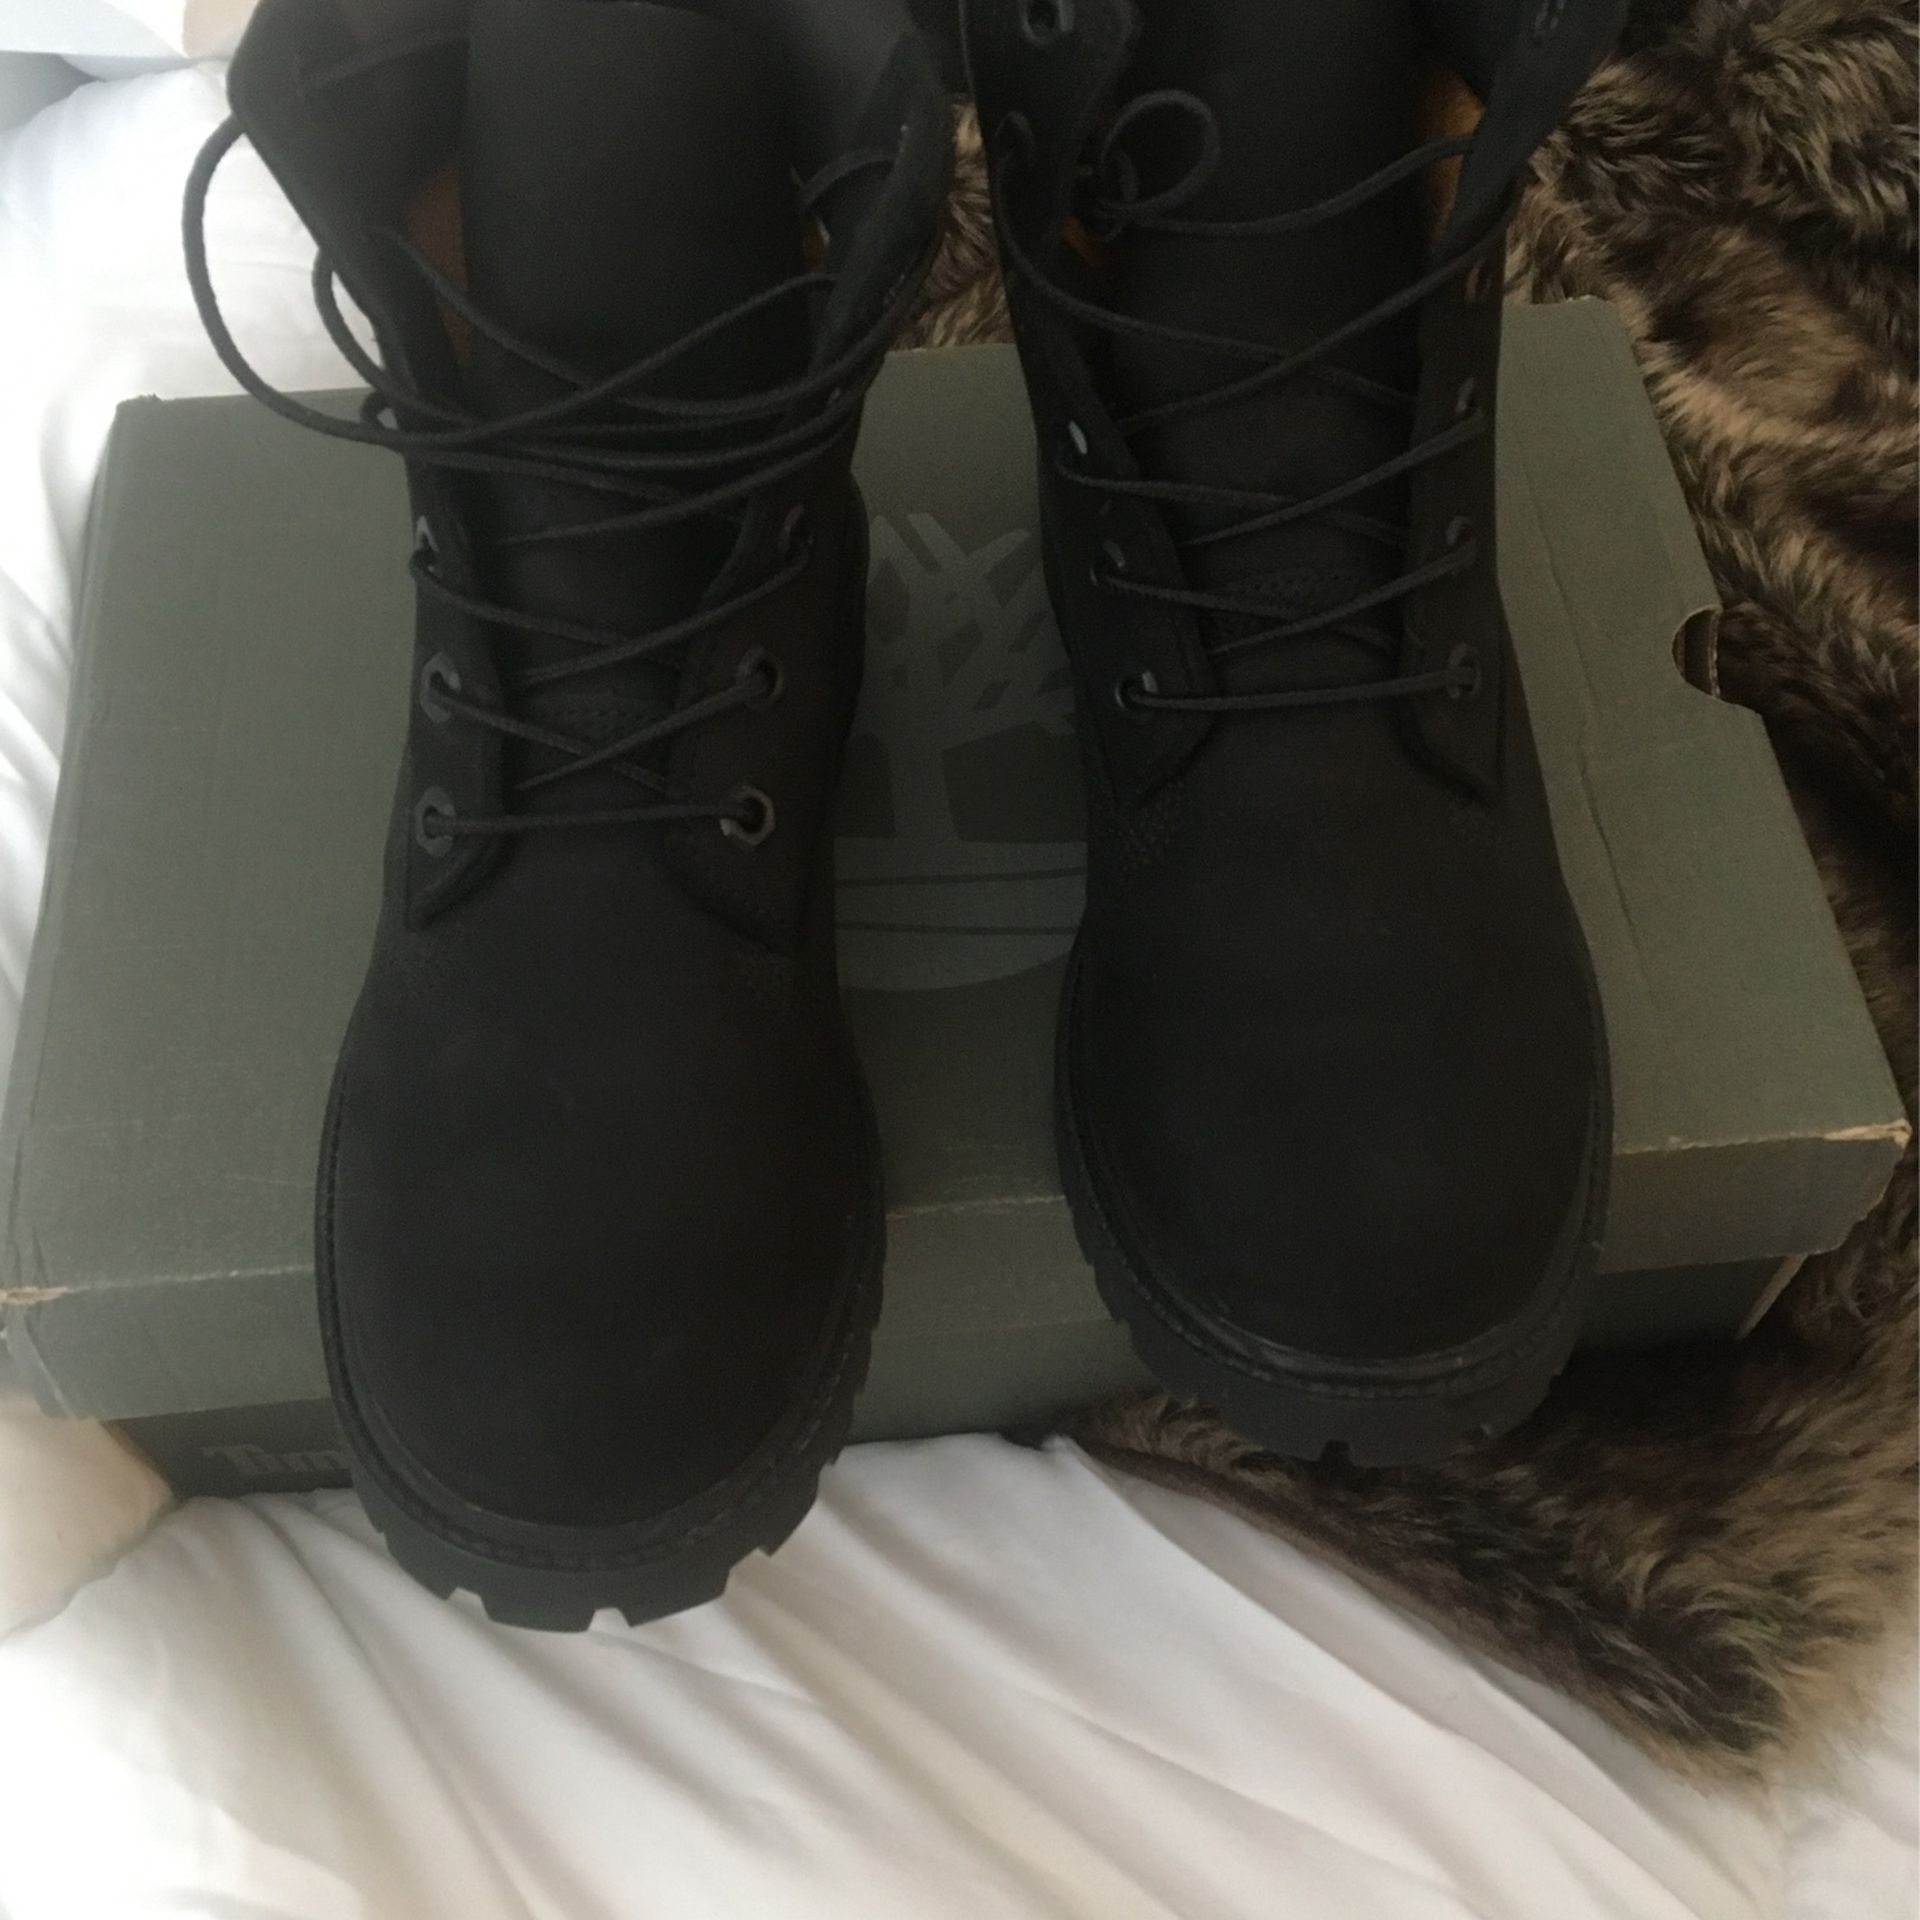 New Timberlands Waterproof Boots Shoes